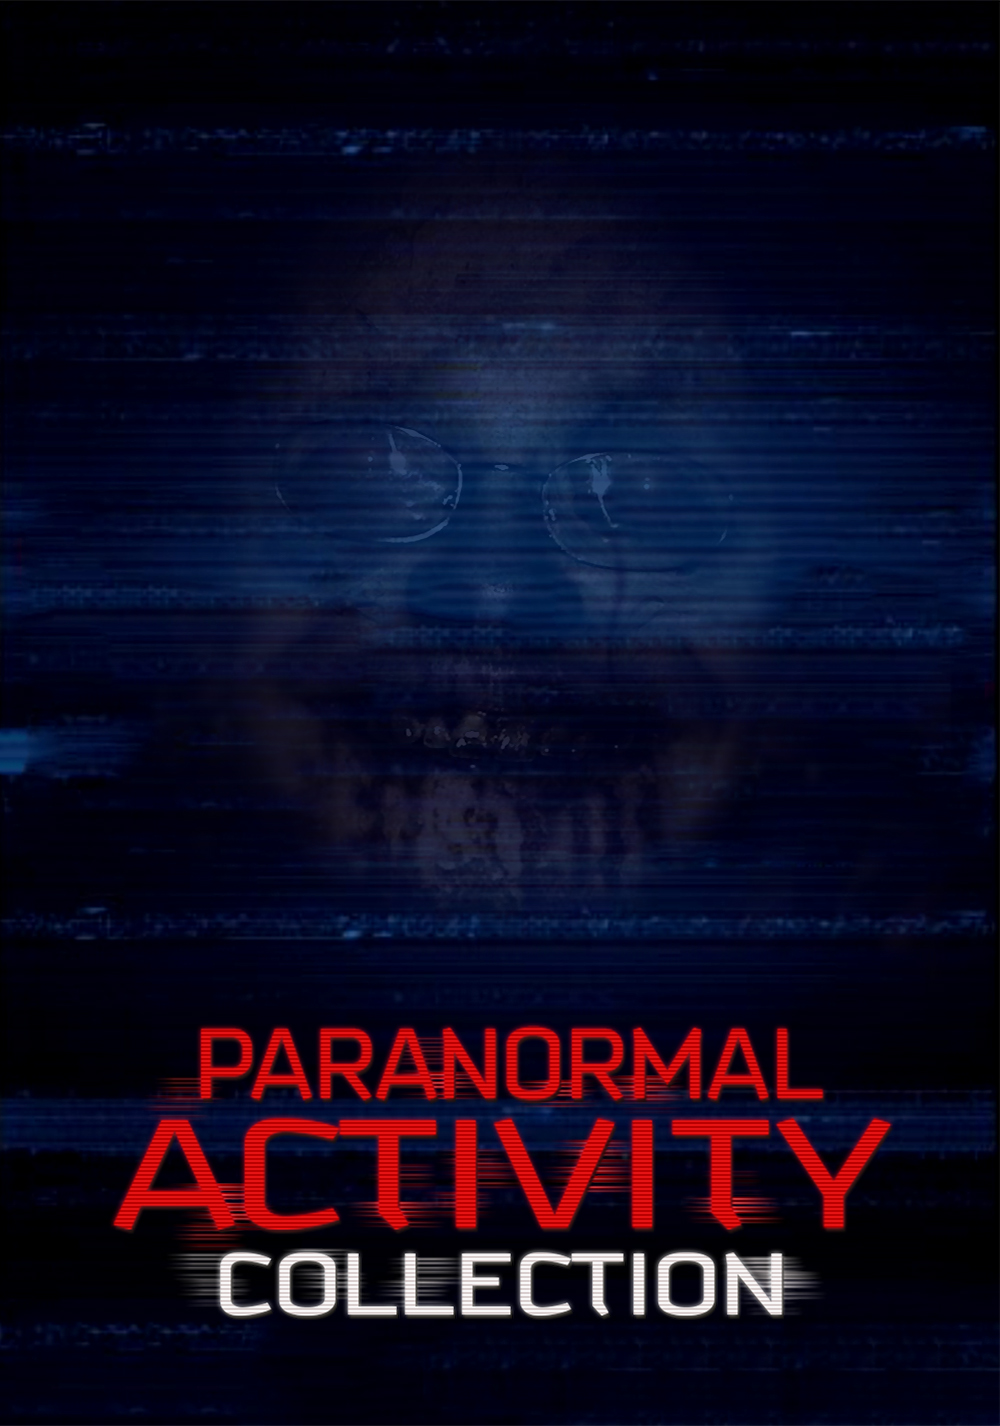 Paranormal Activity (2007-2015) Collection